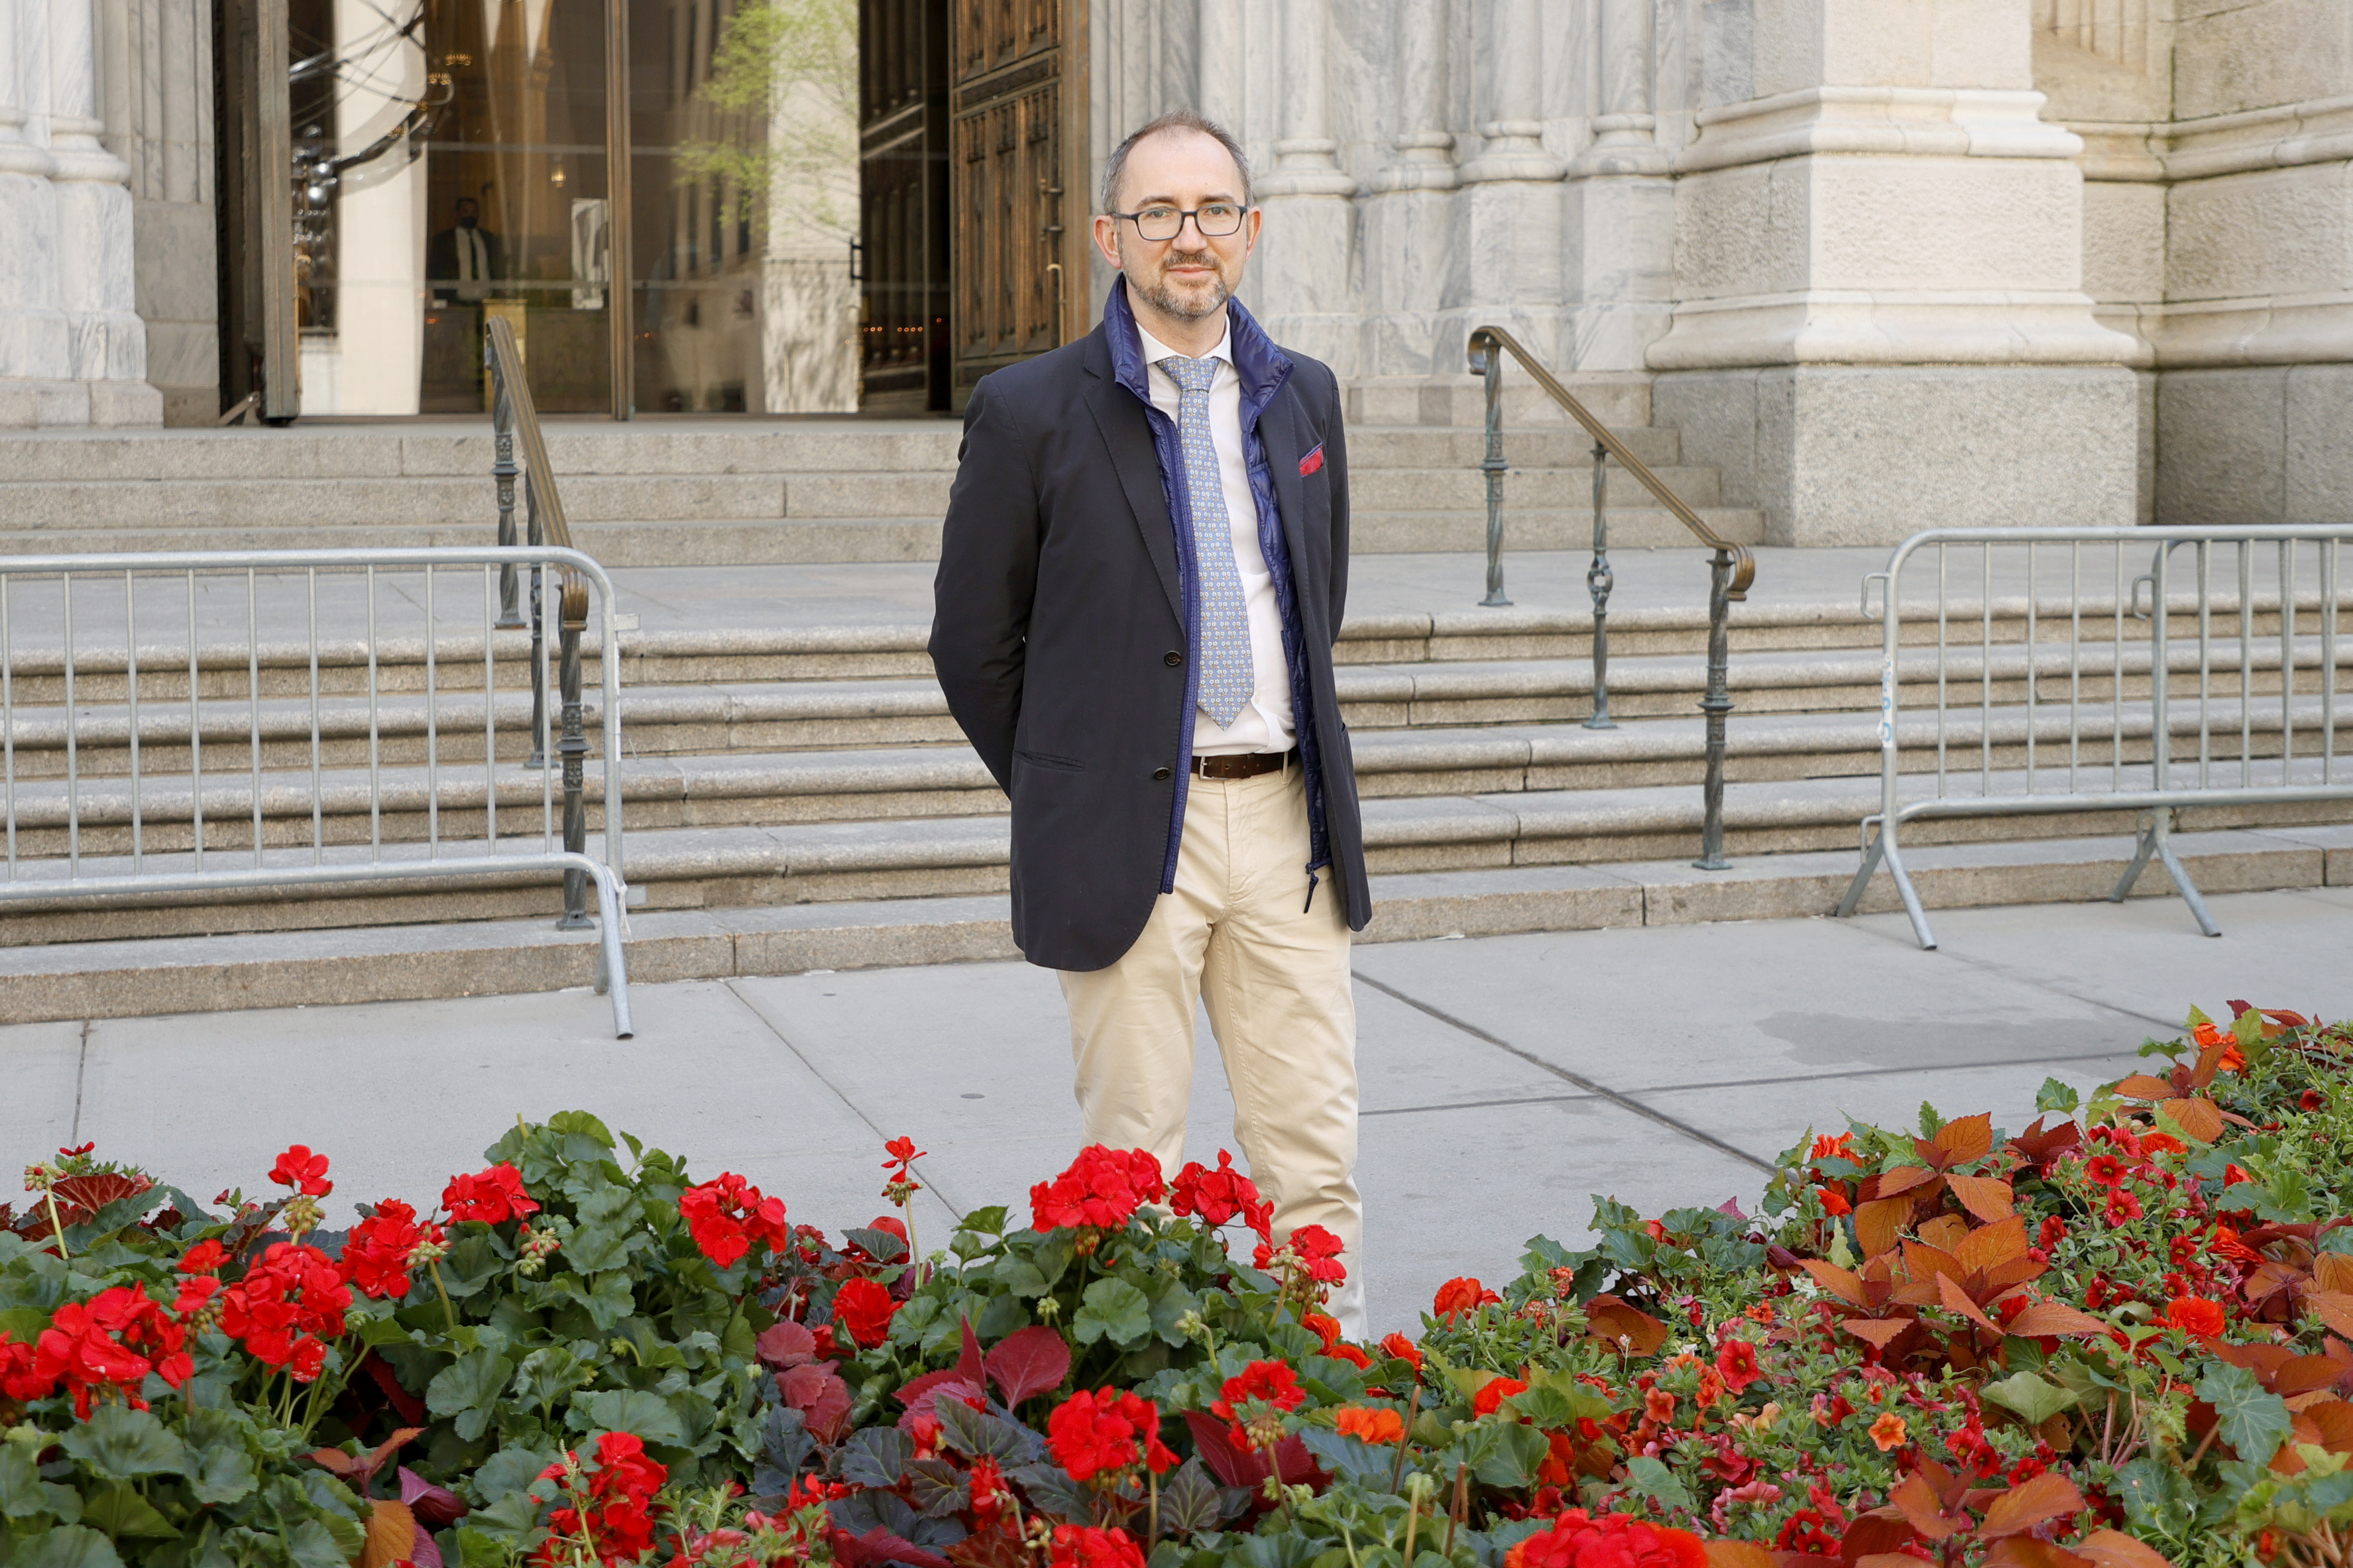 NEW YORK, NEW YORK - MAY 01: Fifth Avenue Association President Jerome Barth poses in front of the St. Patrick's Cathedral Fifth Avenue Blooms Mother's Day Installation on May 01, 2021 in New York City. (Photo by Michael Loccisano/Getty Images for Fifth Avenue Blooms Mother's Day Installation)